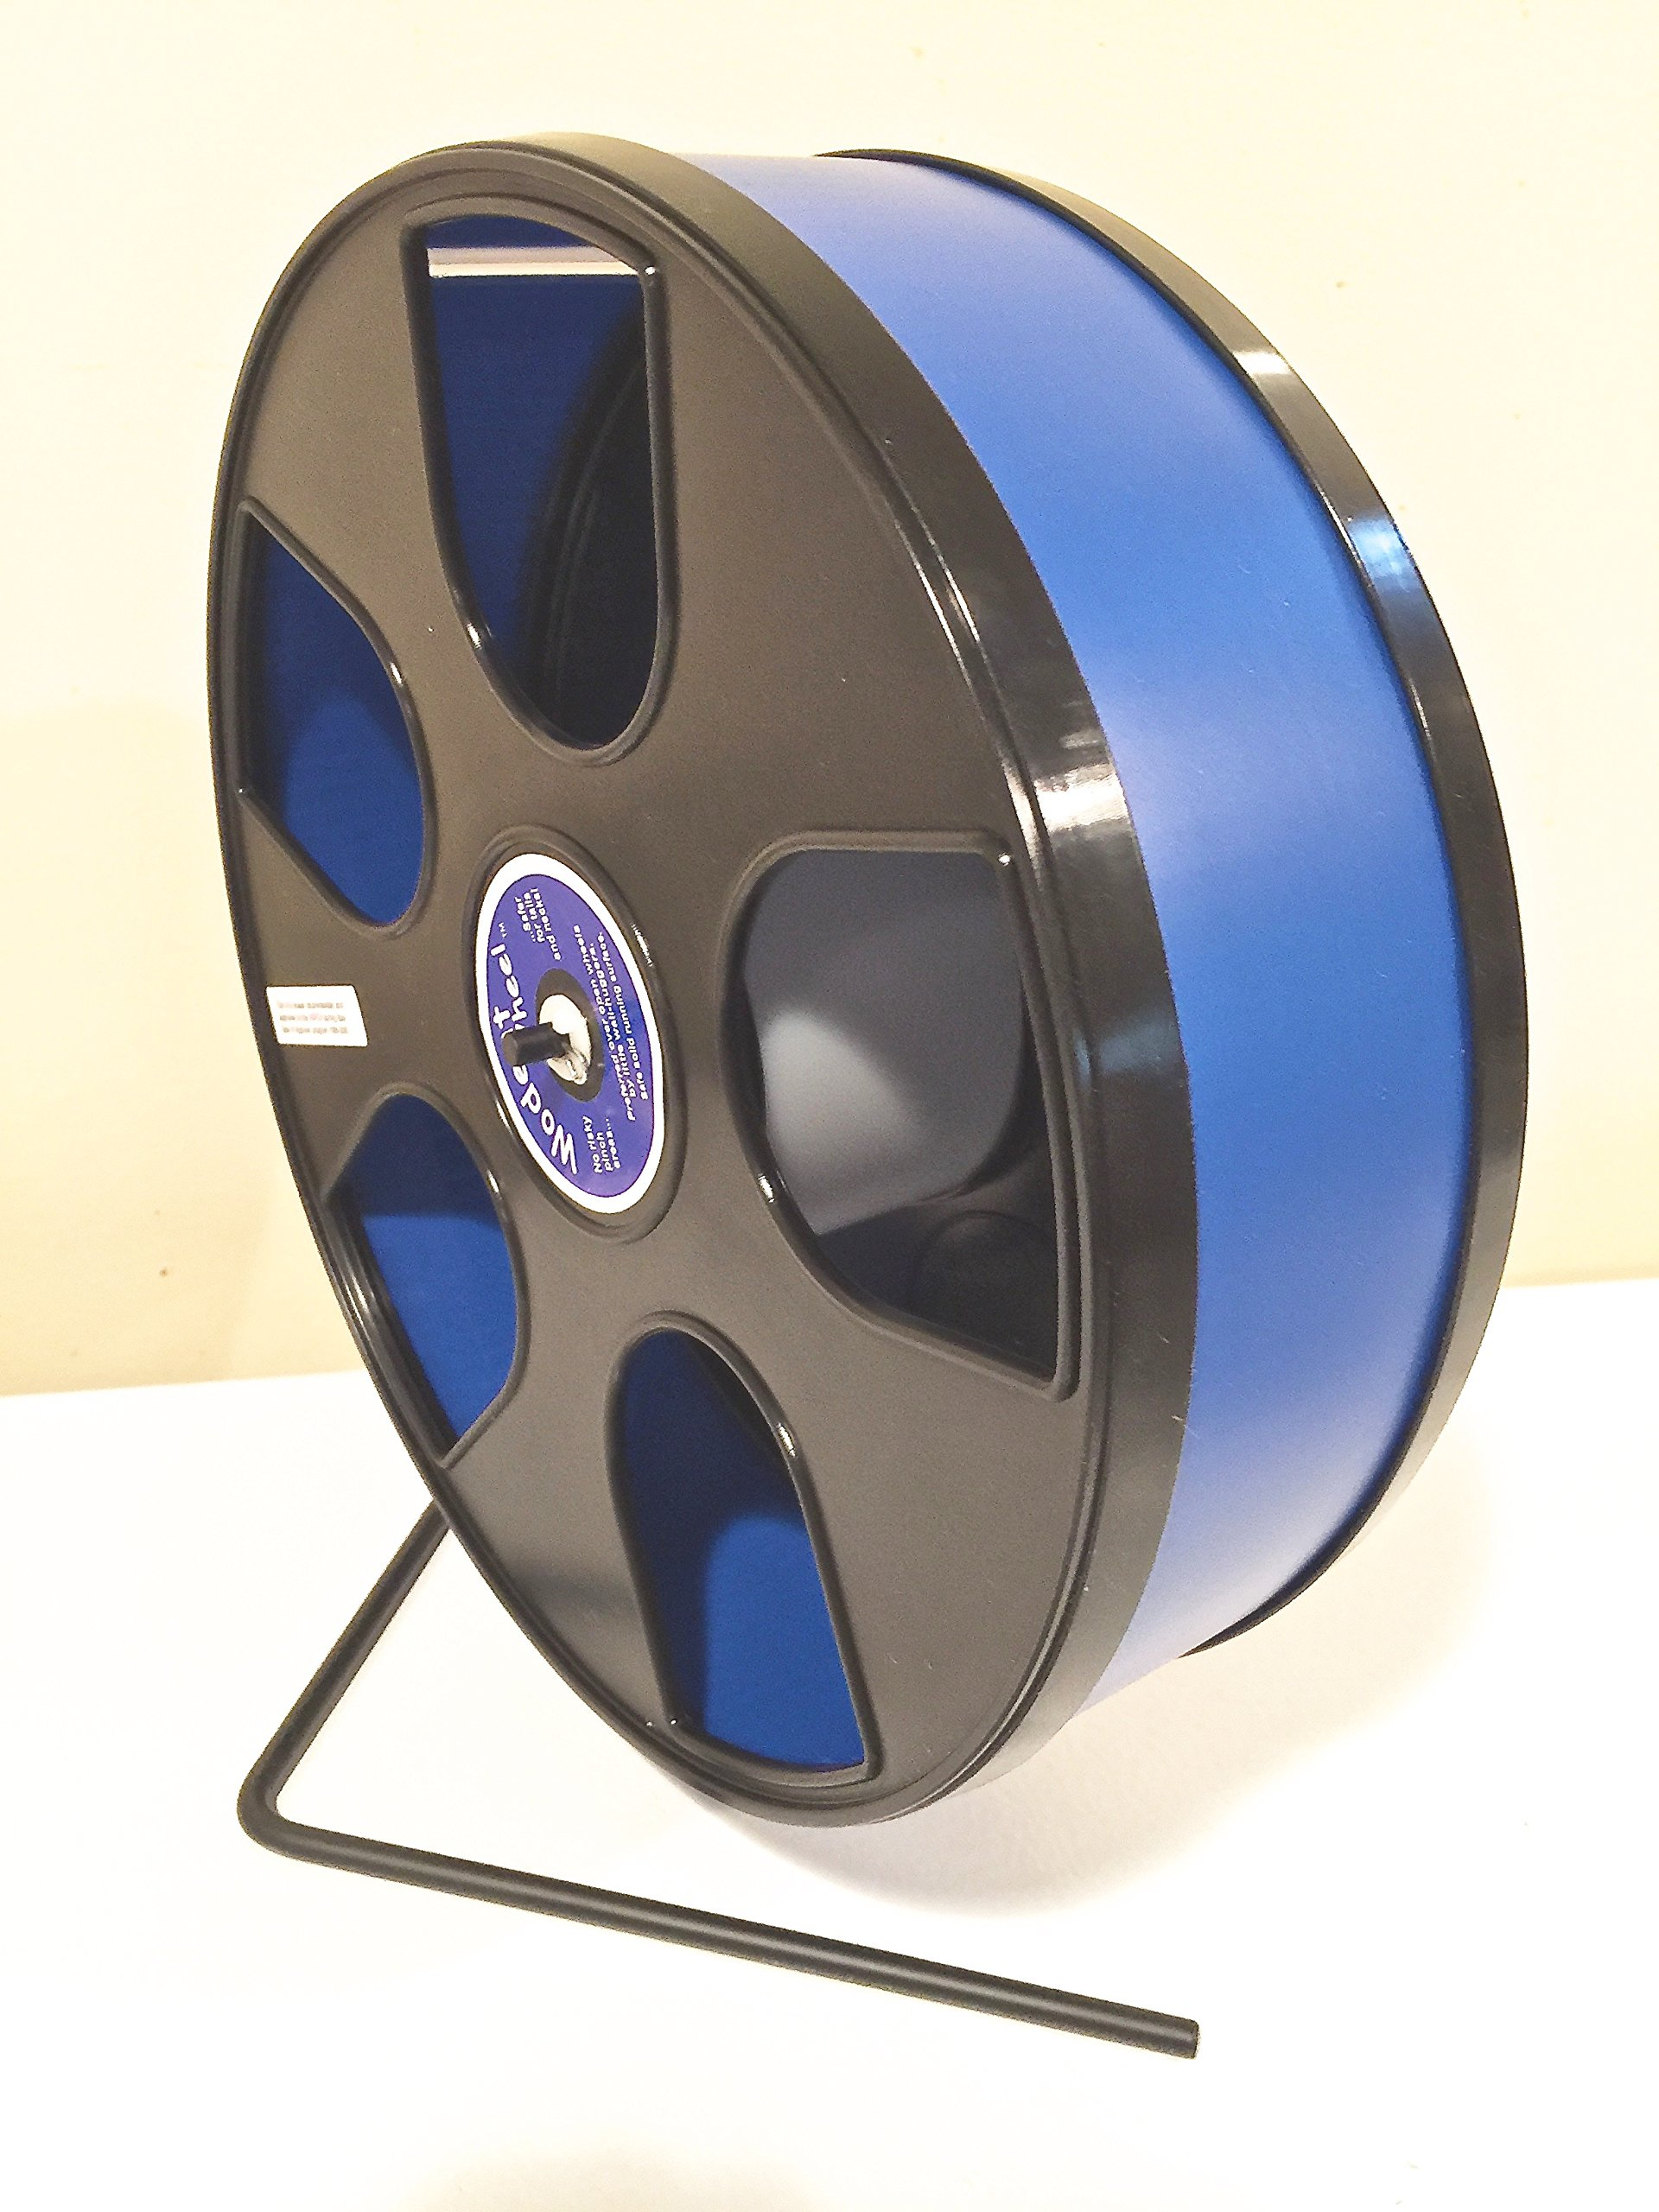 Wodent Wheels Chinchilla, Hedgehog, Wide Track 12'' Diameter Exercise Dark Blue with Black Panels by Wodent Wheels